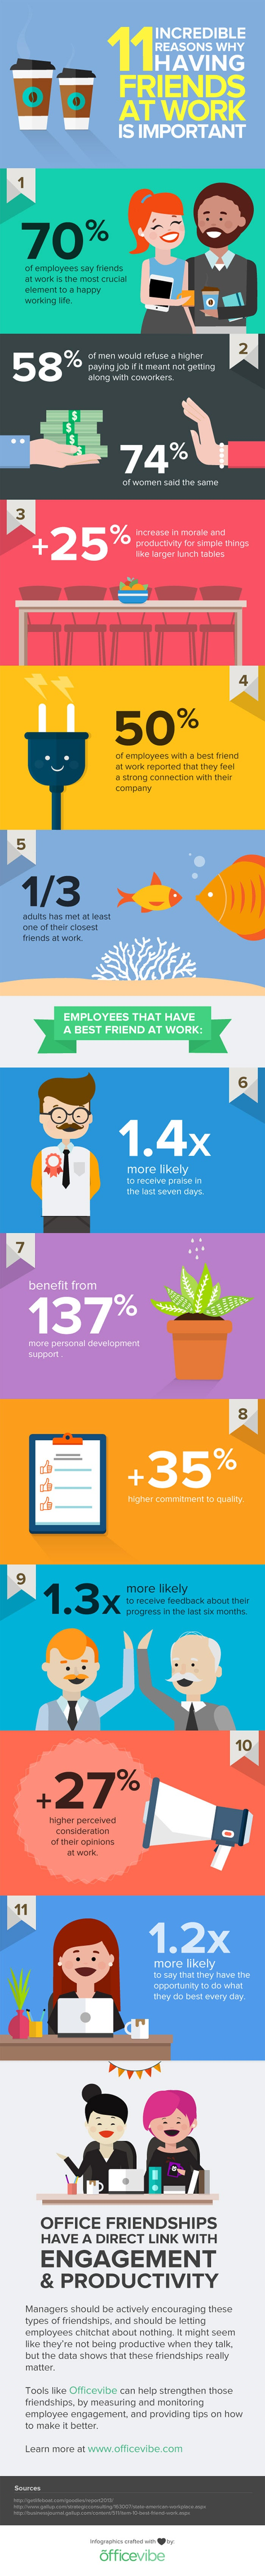 The Benefits of Having Friends in the Office (Infographic)